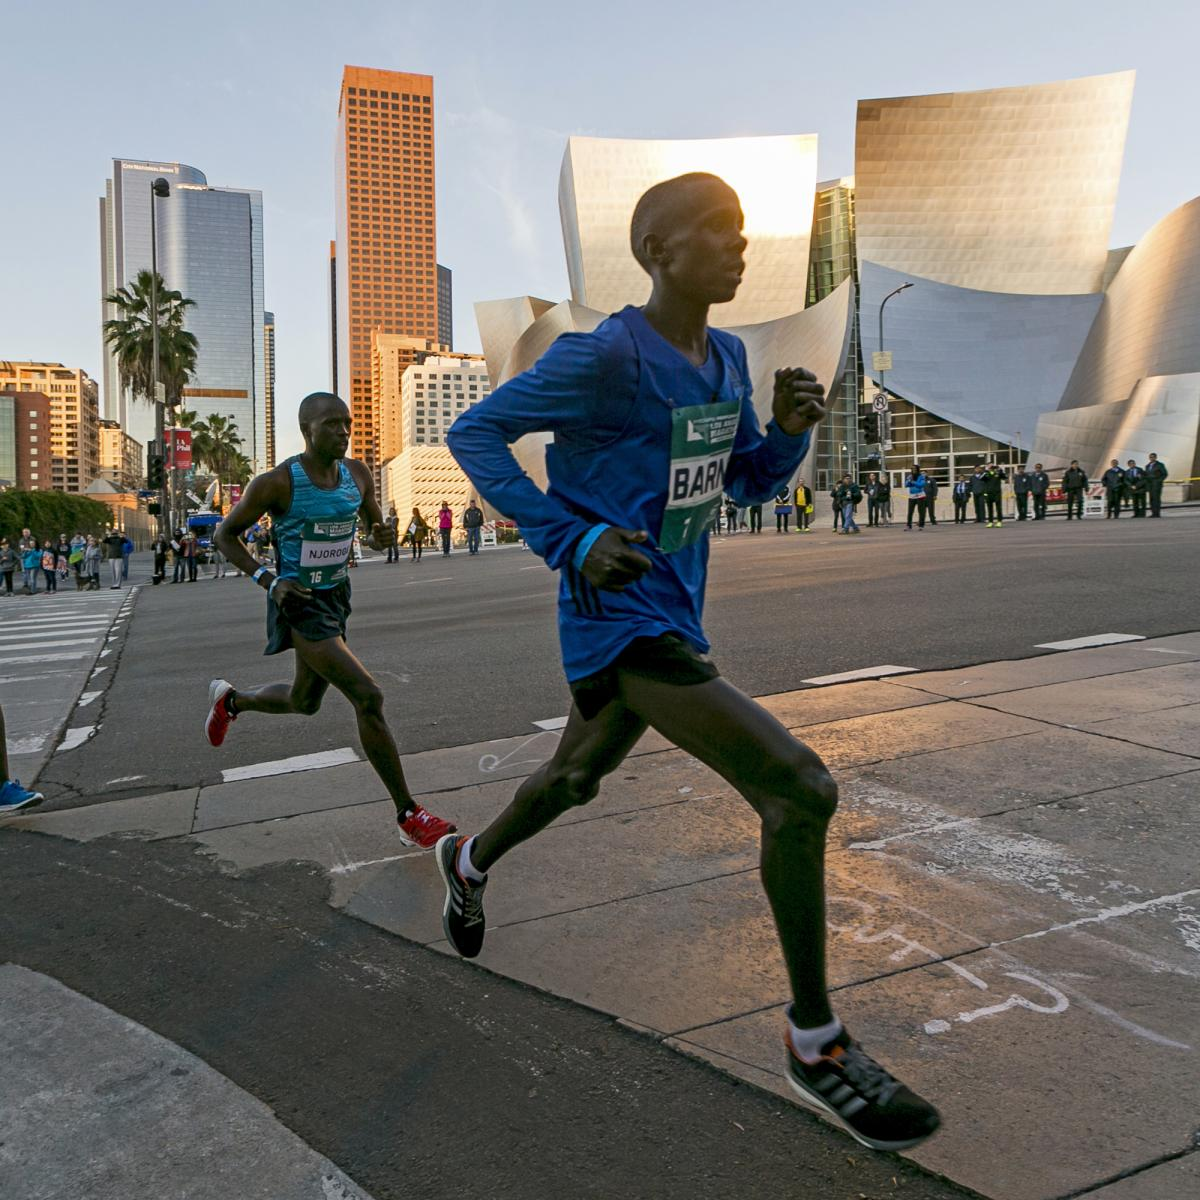 See the full Los Angeles Marathon results